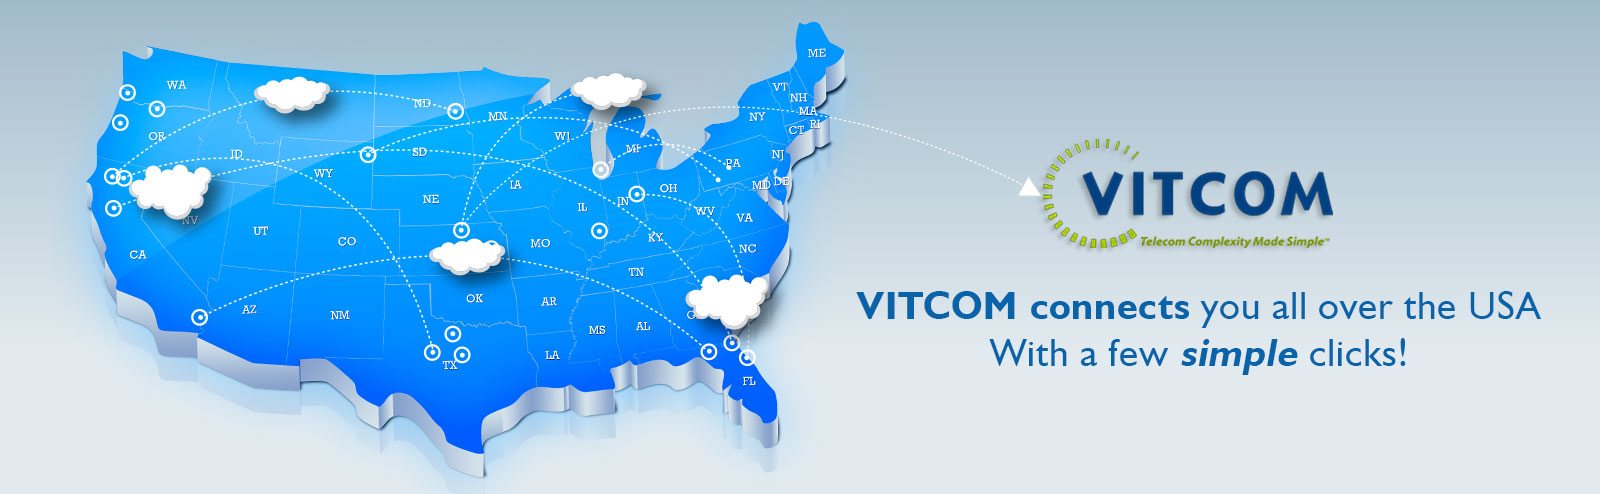 vitcom-connects_new